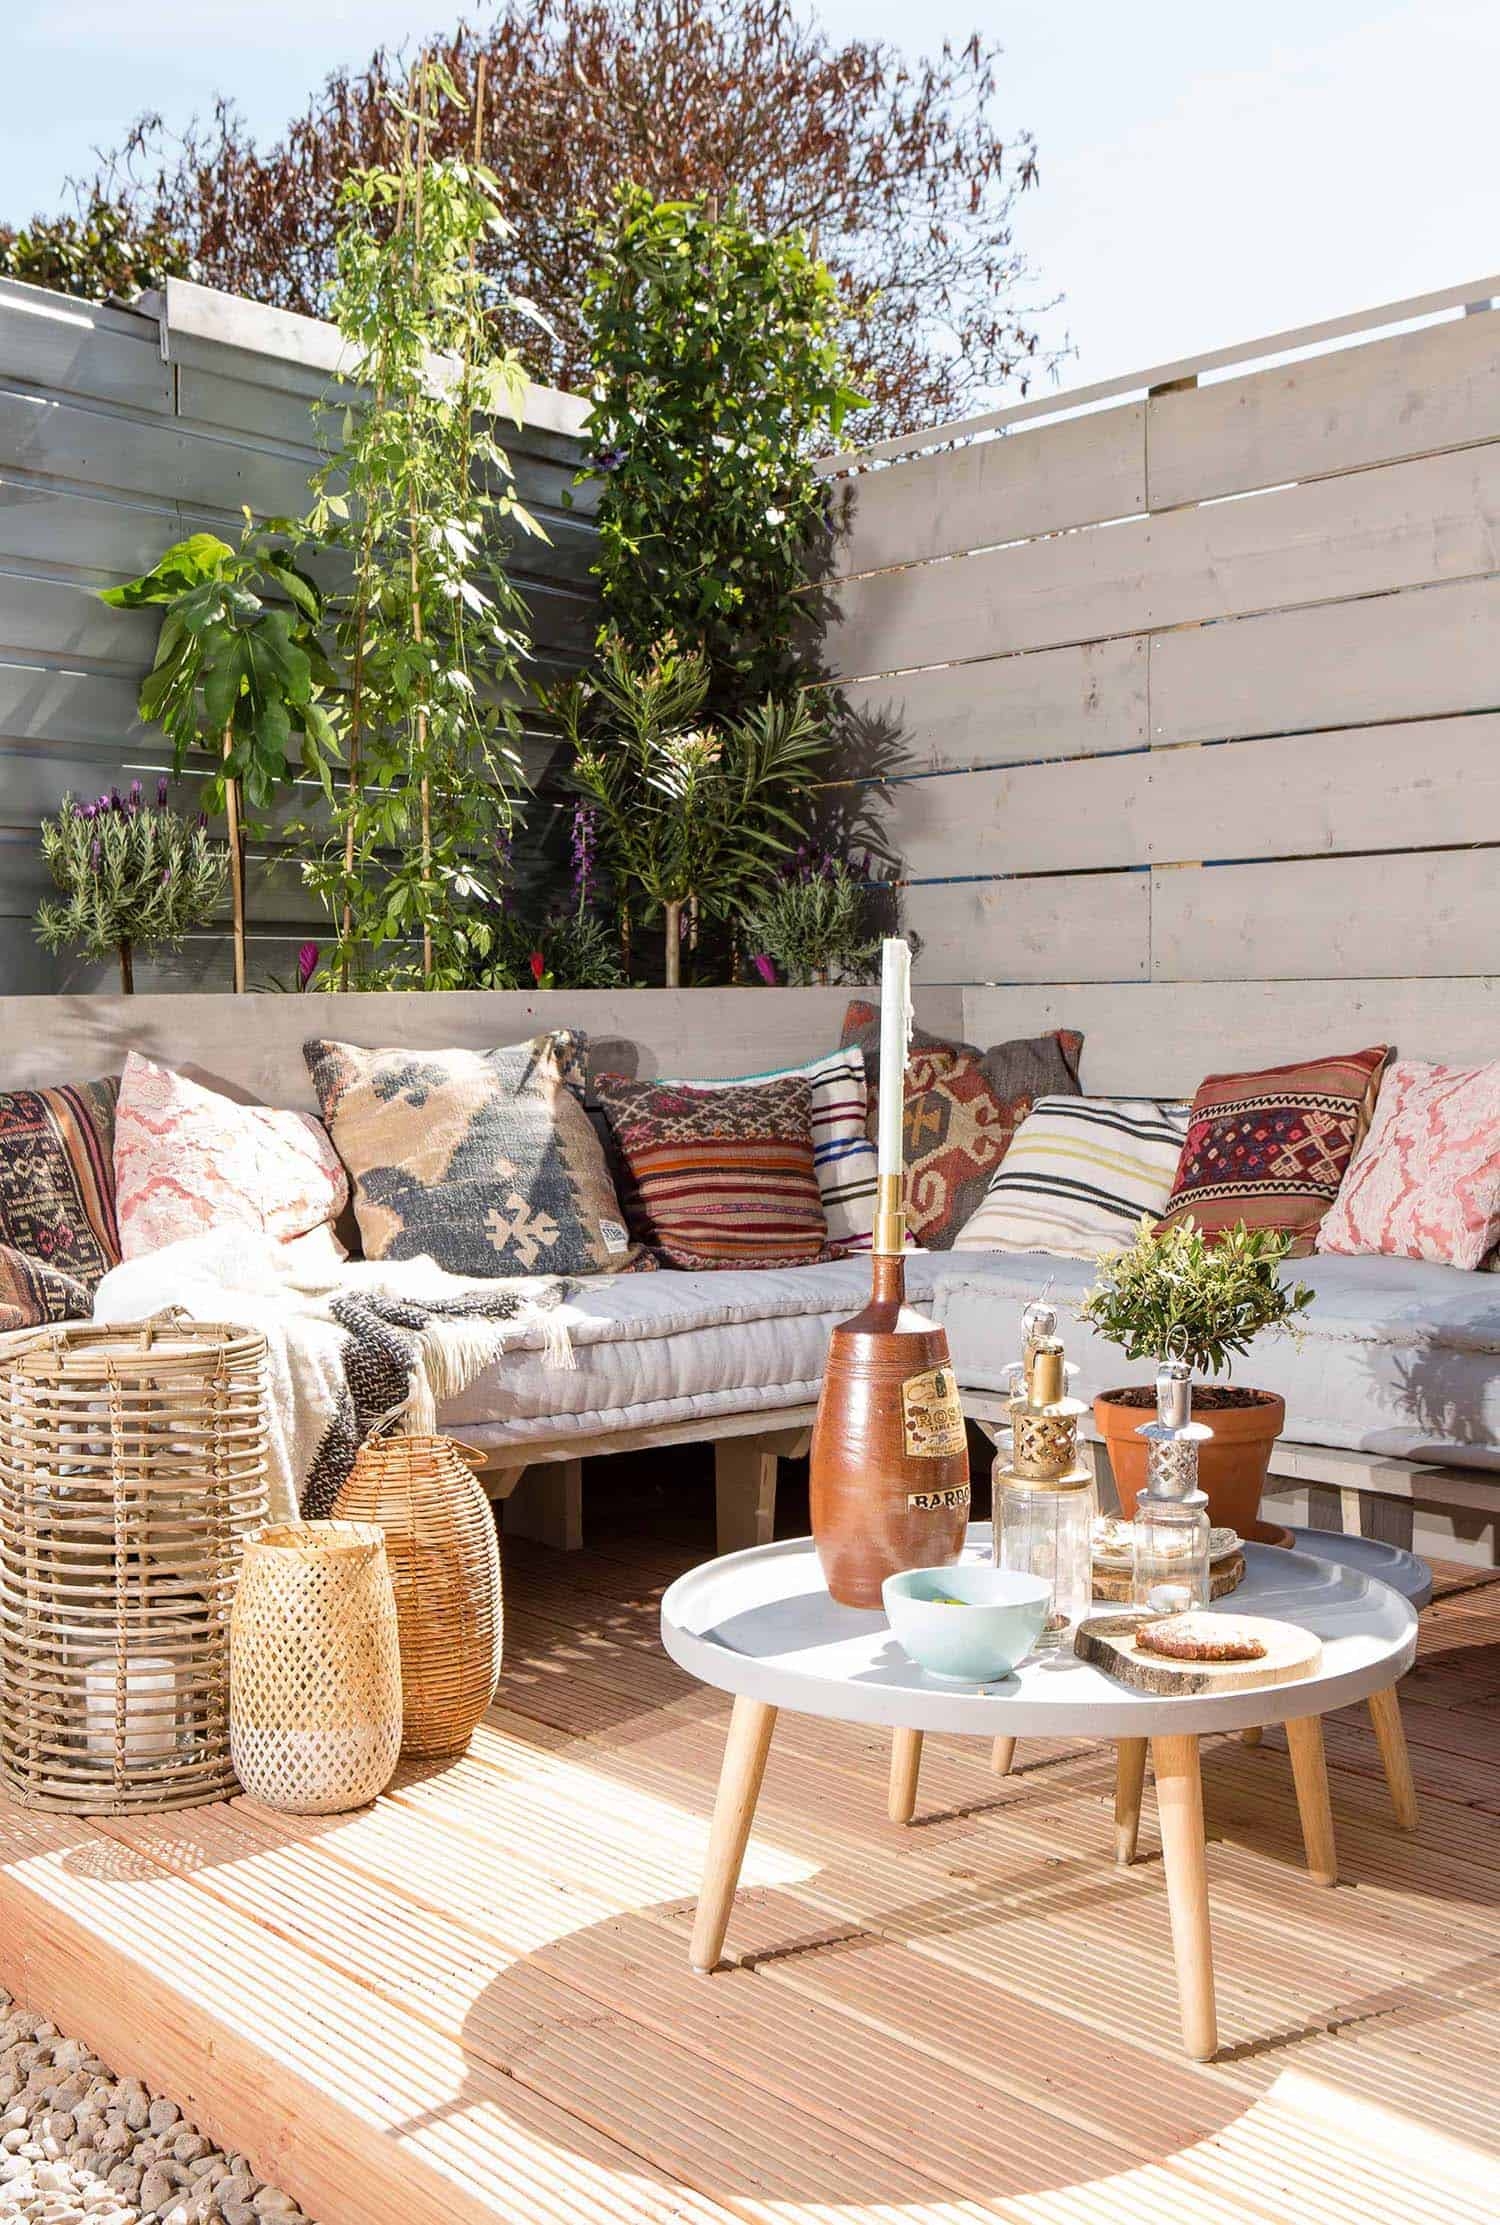 28 Absolutely dreamy Bohemian garden design ideas